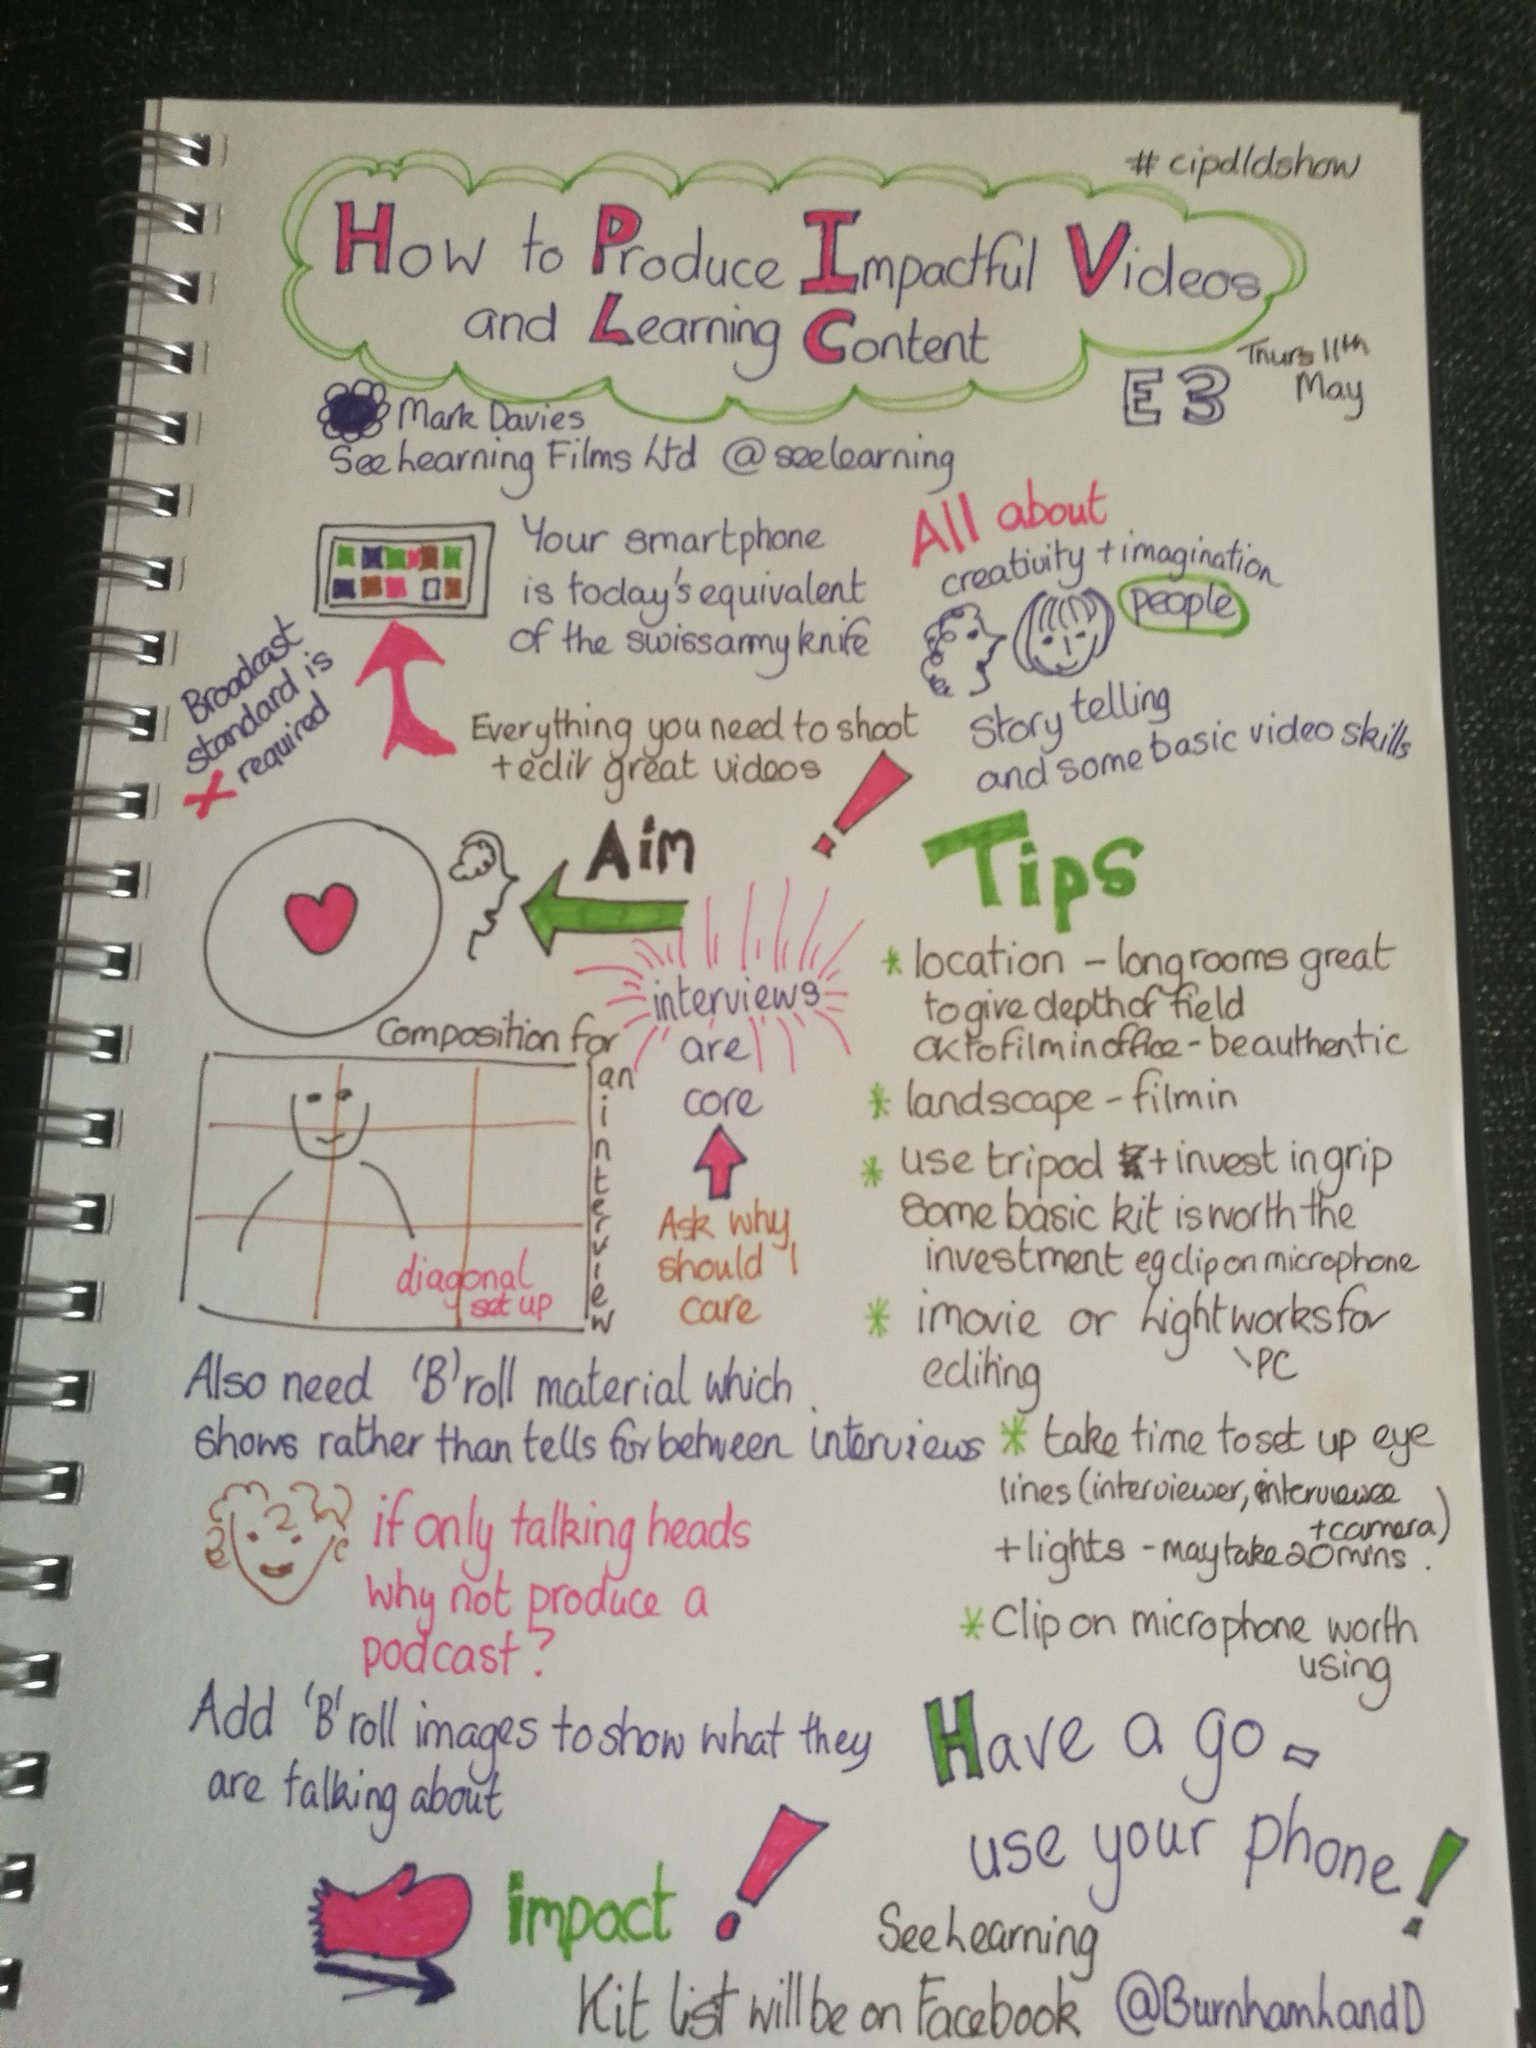 #cipdldshow Sketchnote E3 'Producing Impactful Videos' with Mark Davies & colleagues - very informative https://t.co/KN9Y5sSI9U